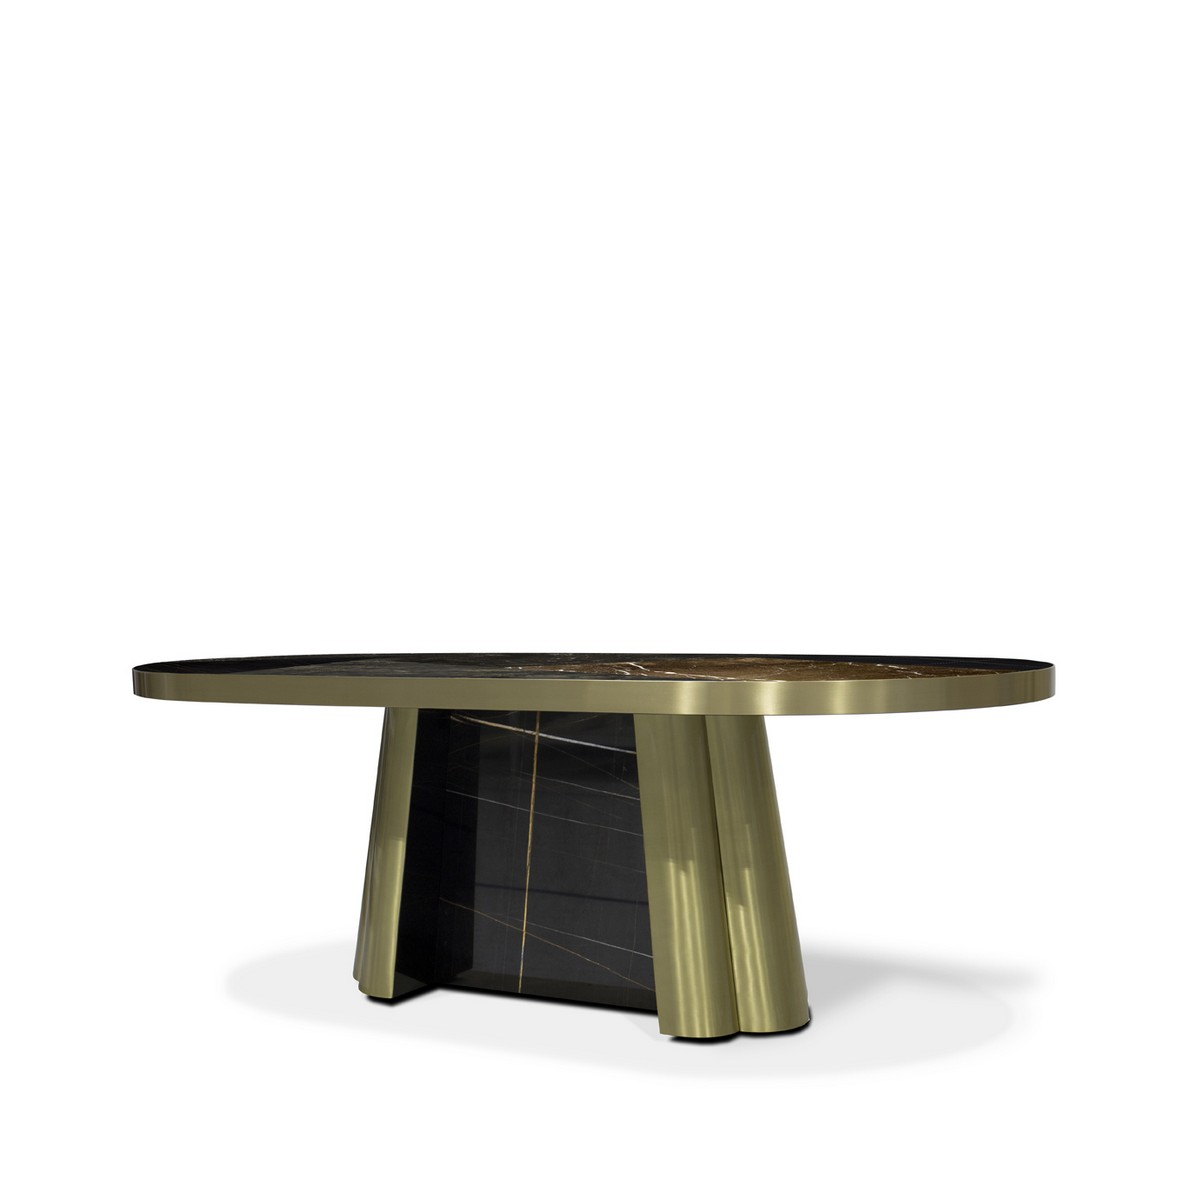 The Decodiva Dining Table: Craftsmanship Meets Contemporary Design contemporary design The Decodiva Dining Table: Craftsmanship Meets Contemporary Design 1 3